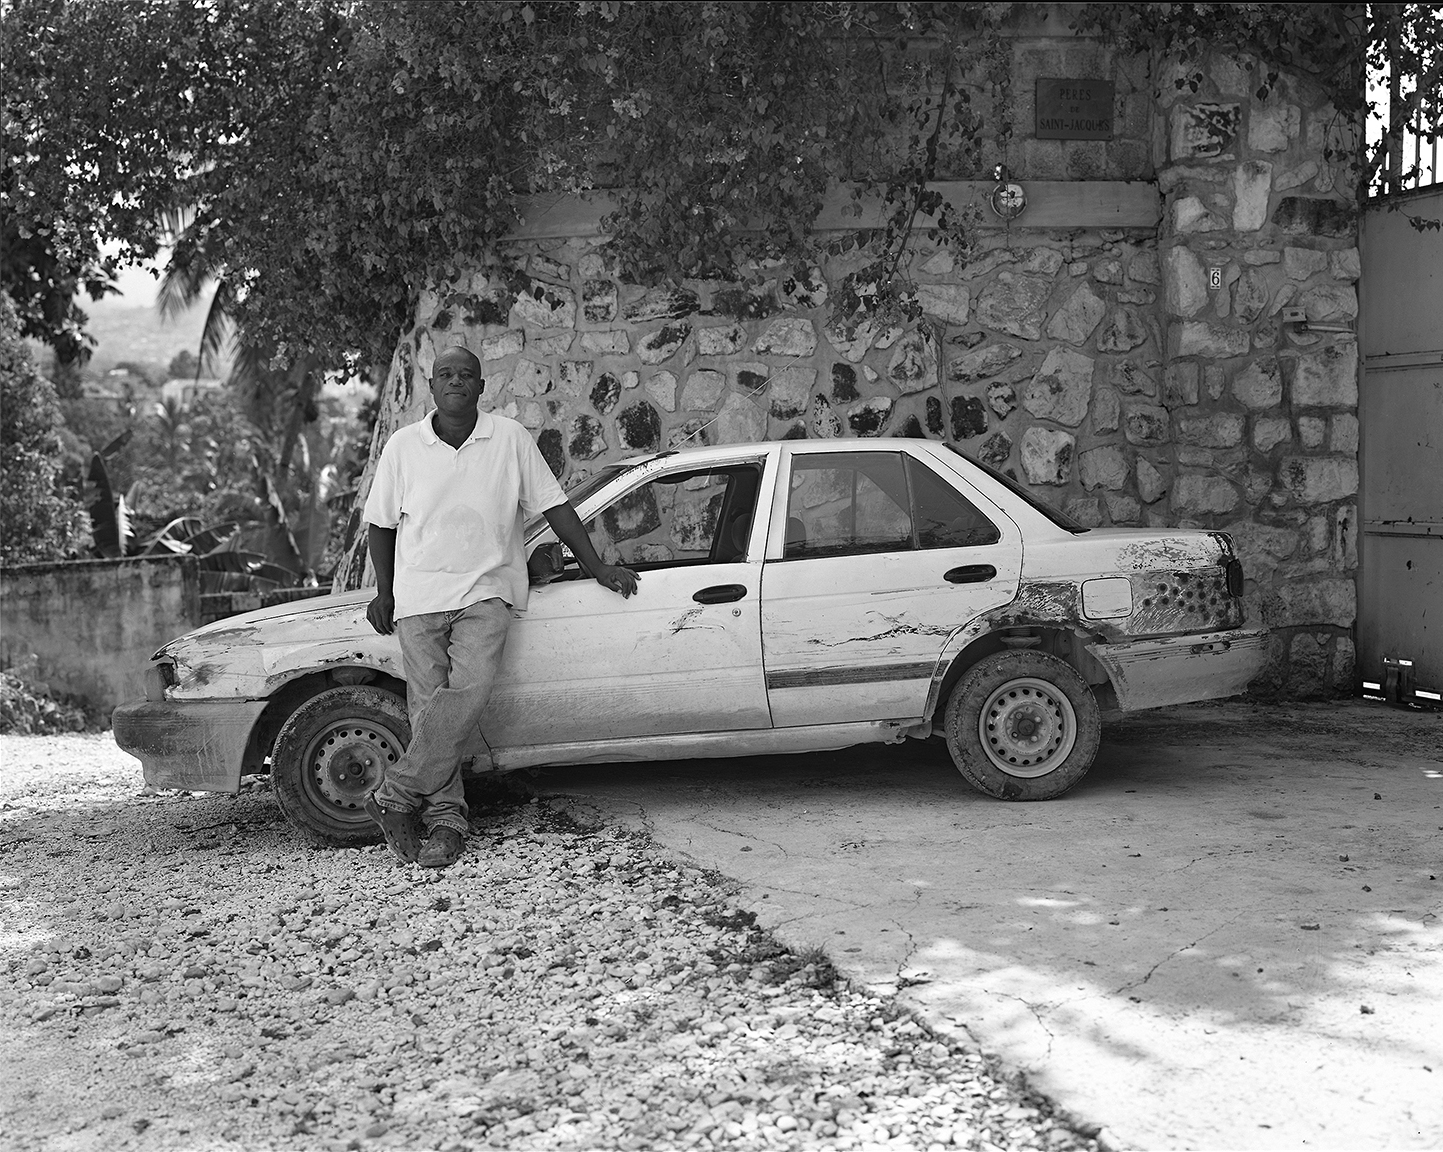 Evens Bruno With His Car, Fontemara, May 2012